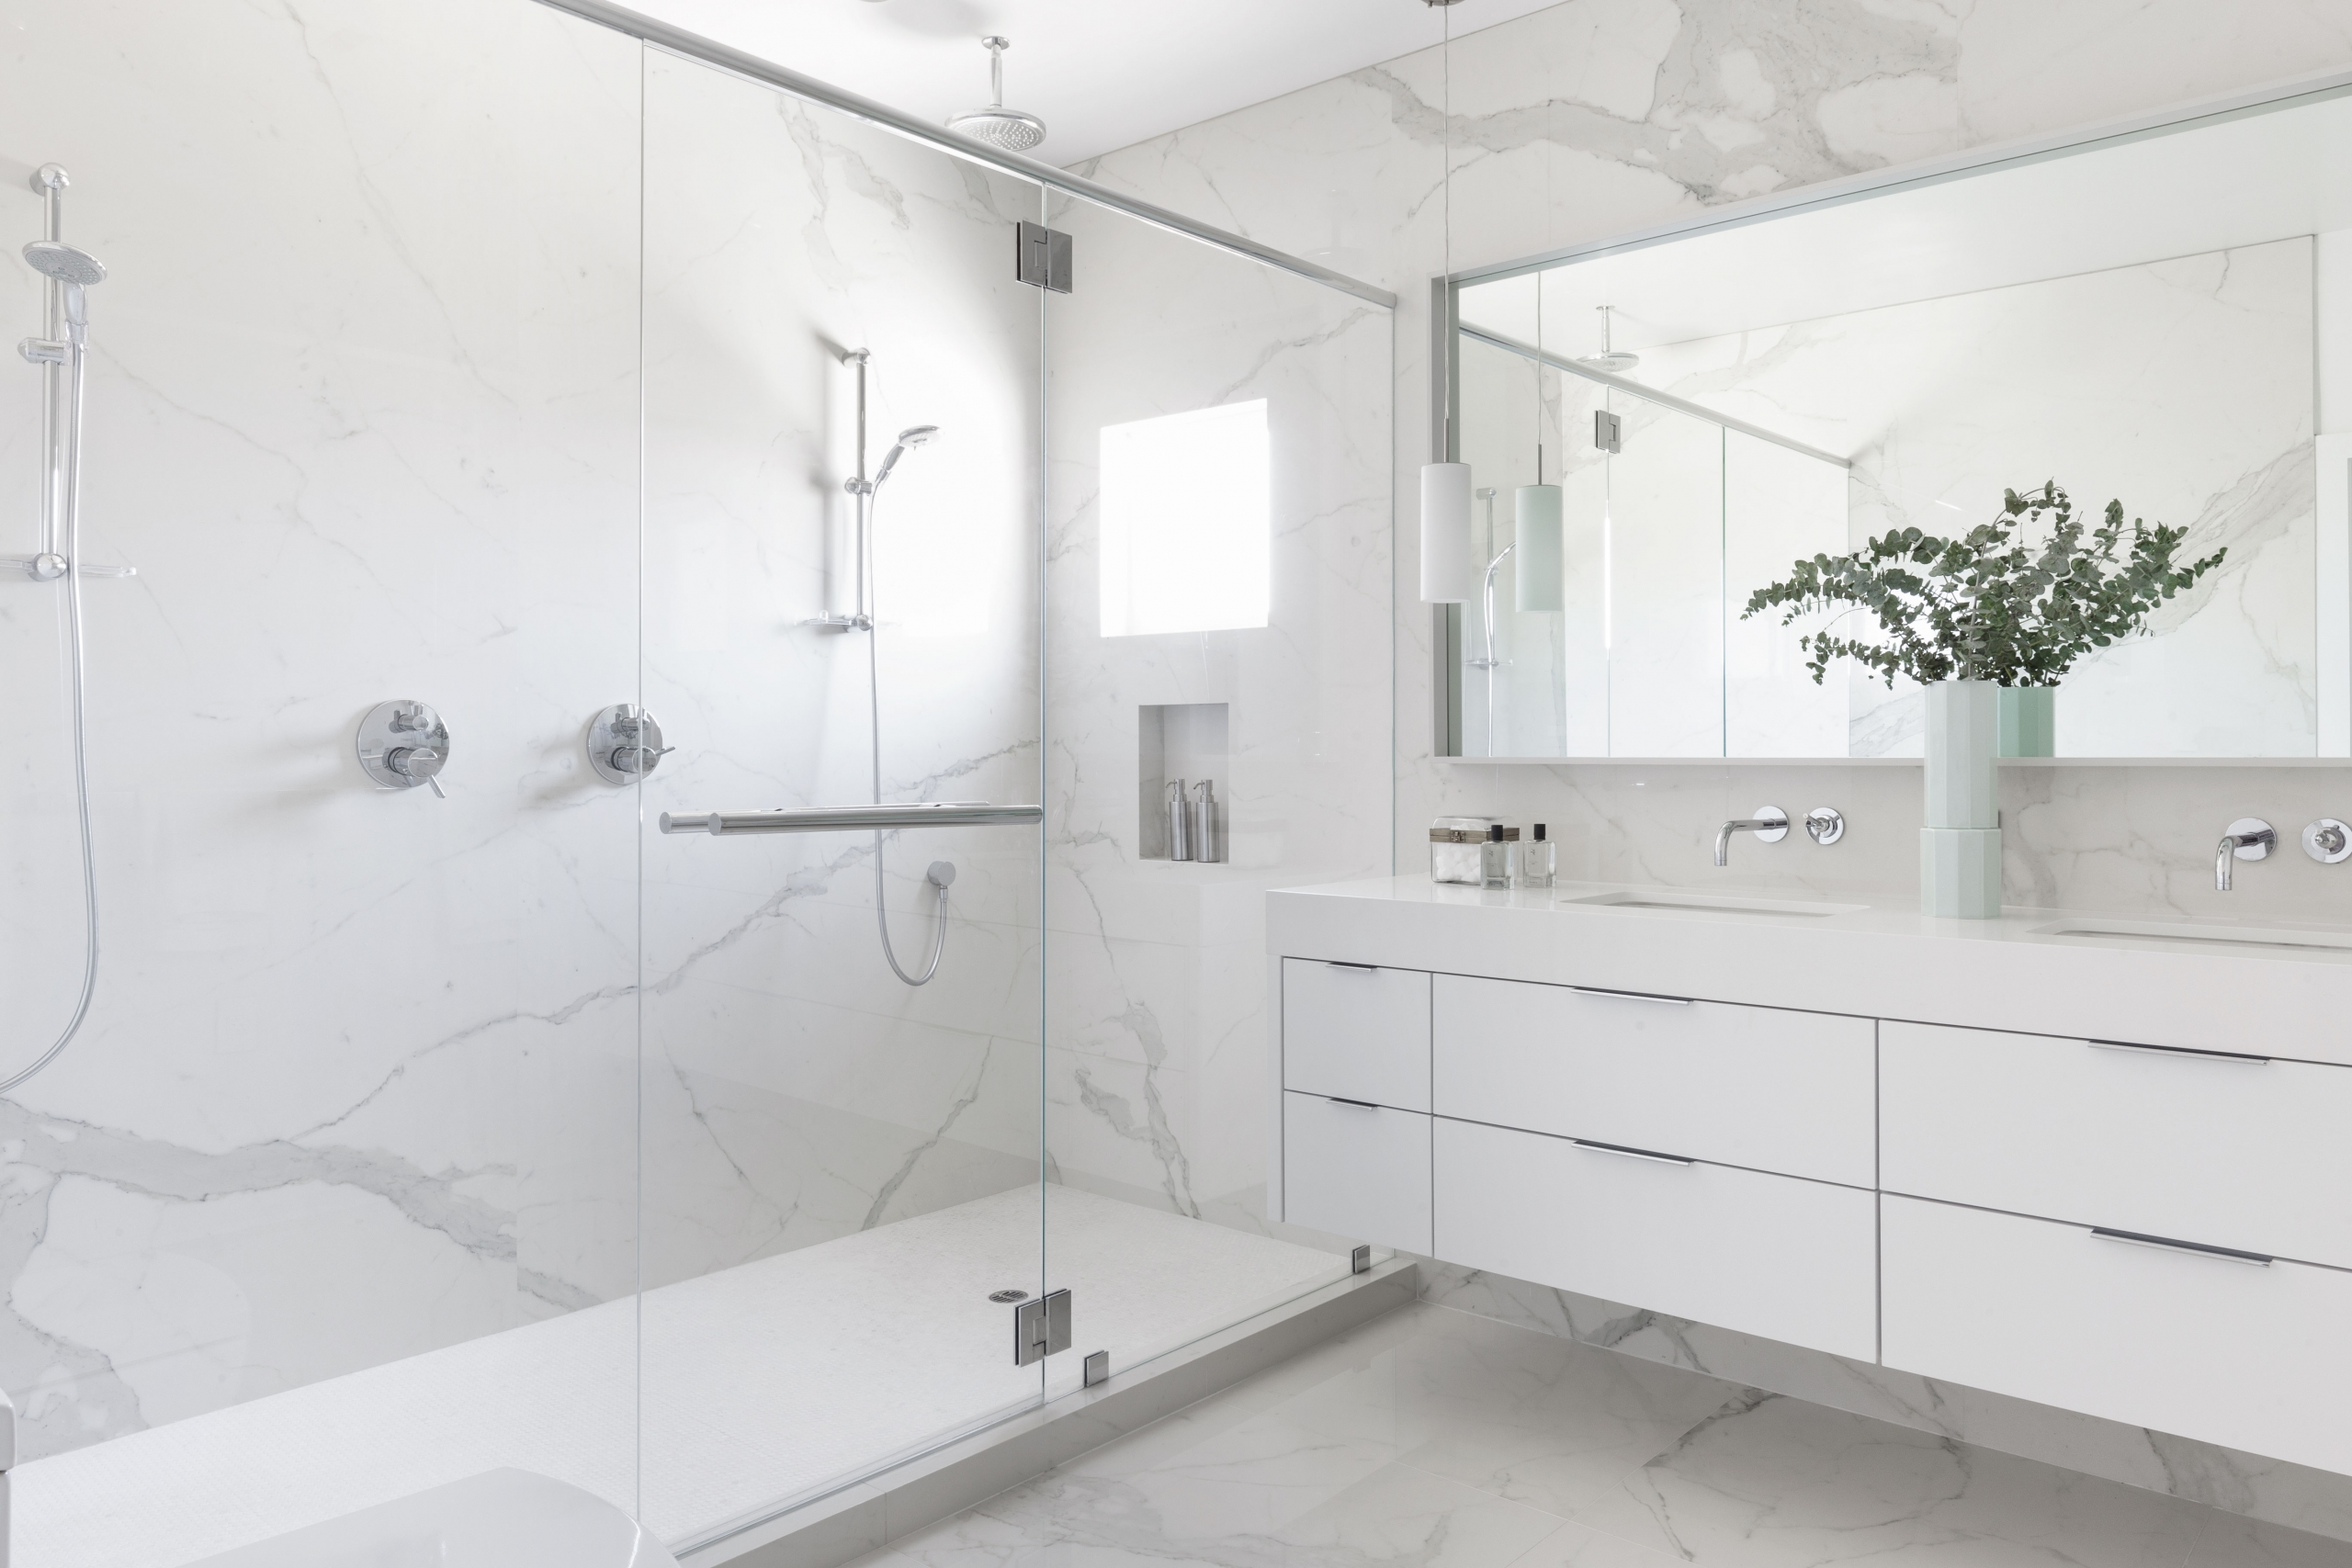 What bathroom with lower mirror and vase